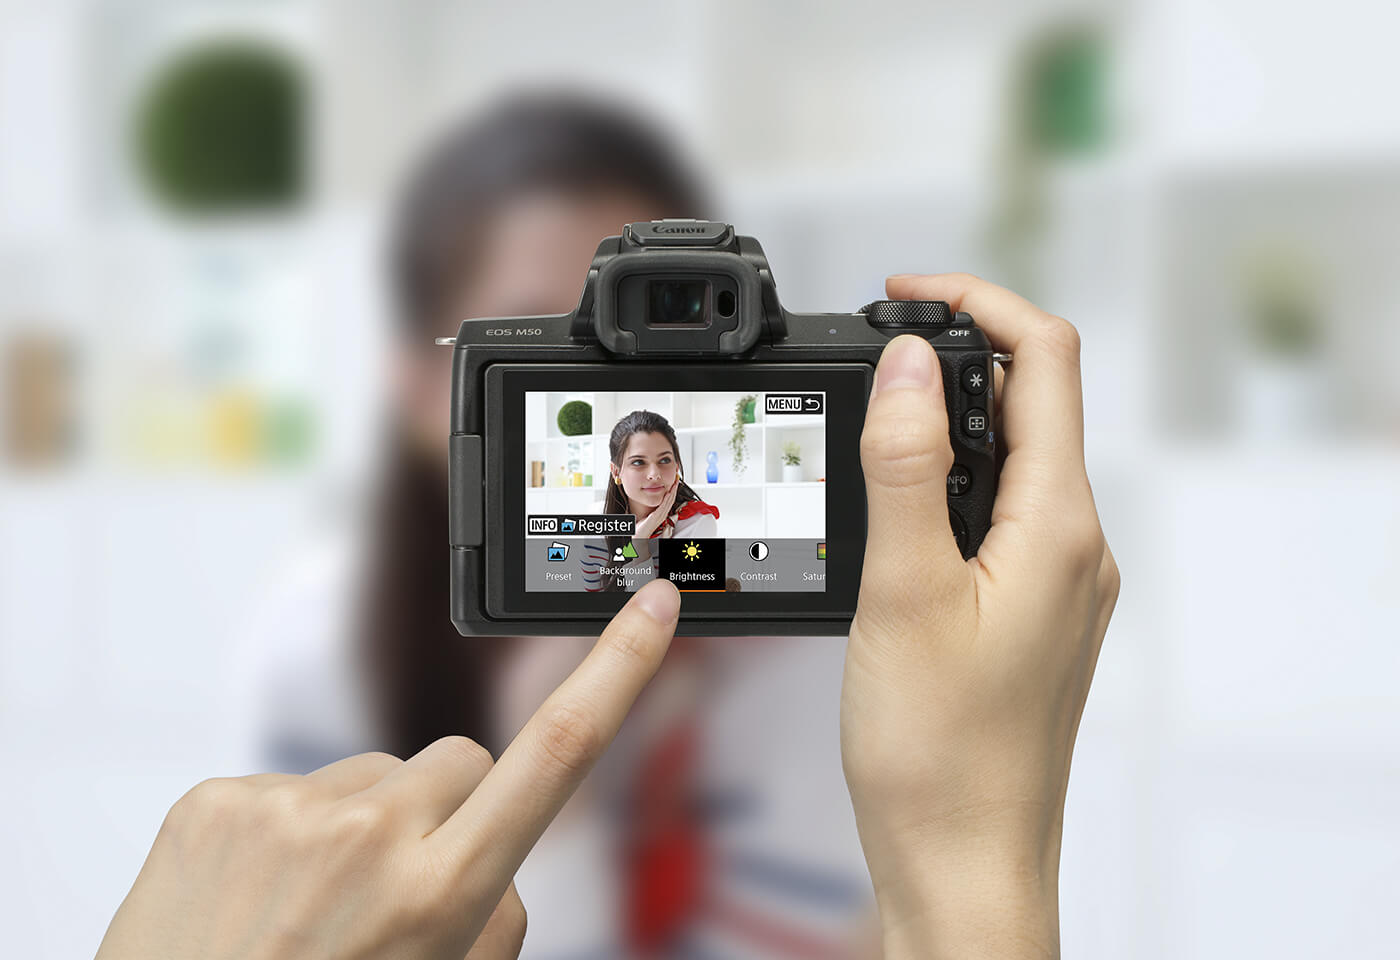 Image of person taking photo taken with an EOS M50